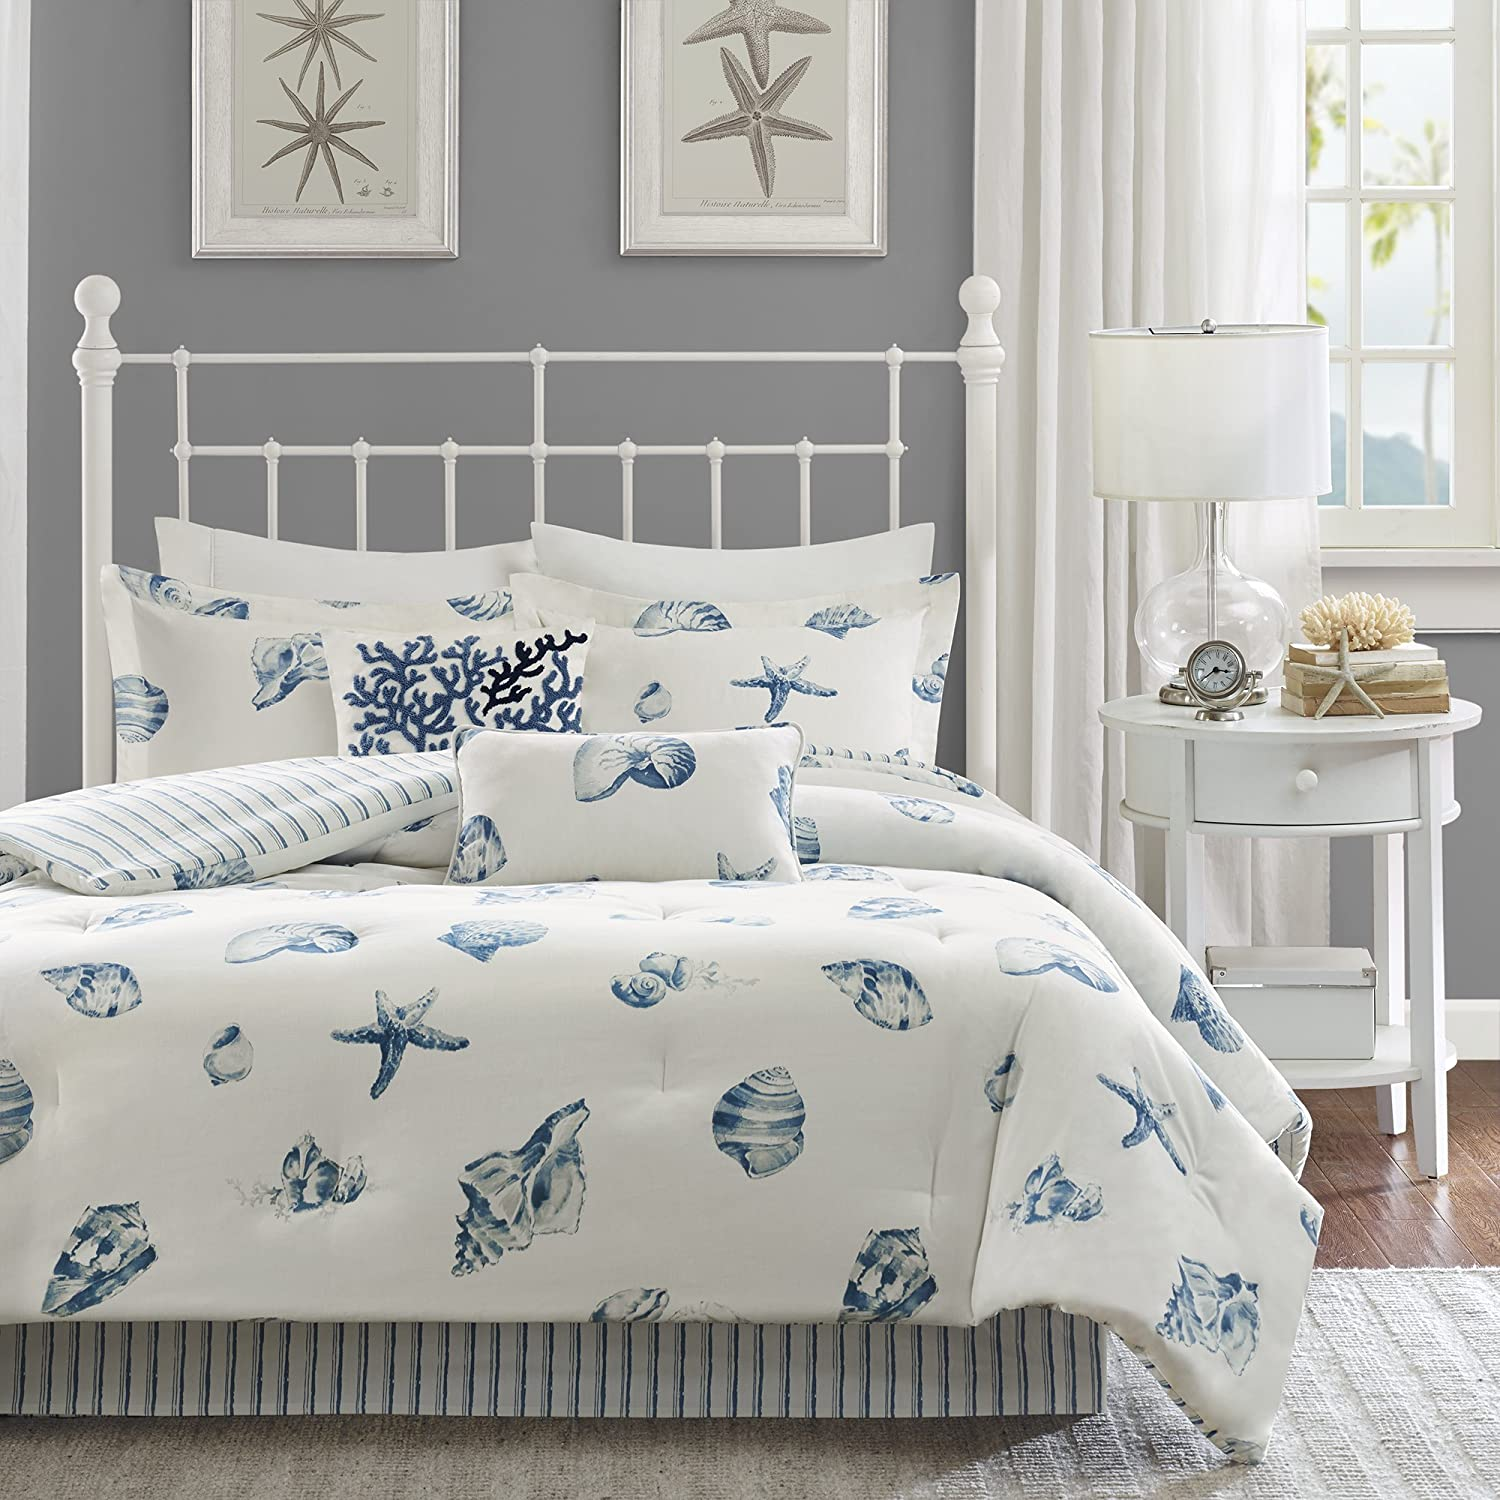 Harbor House Beach House Queen Size Bed Comforter Set - Blue, Ivory, Seashells – 4 Pieces Bedding Sets – 100% Cotton Bedroom Comforters